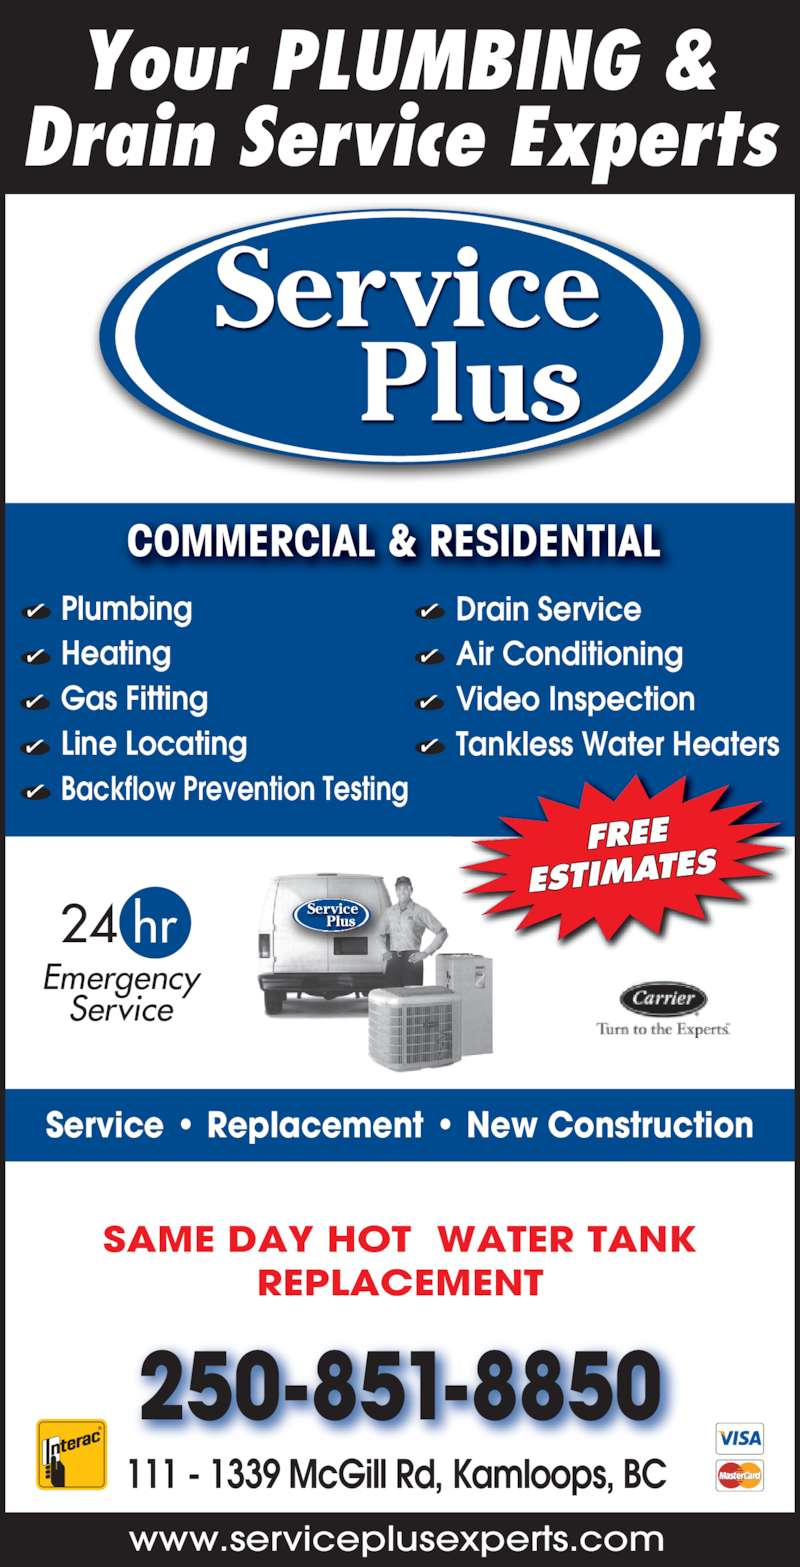 Service Plus (250-851-8850) - Display Ad - COMMERCIAL & RESIDENTIAL  Service Plus Service Plus www.serviceplusexperts.com  Emergency Service 24 hr Service • Replacement • New Construction 250-851-8850 111 - 1339 McGill Rd, Kamloops, BC  FREE ESTIMATES Your PLUMBING & Drain Service Experts Plumbing Heating Gas Fitting Line Locating Backflow Prevention Testing Drain Service Air Conditioning Video Inspection Tankless Water Heaters SAME DAY HOT  WATER TANK REPLACEMENT